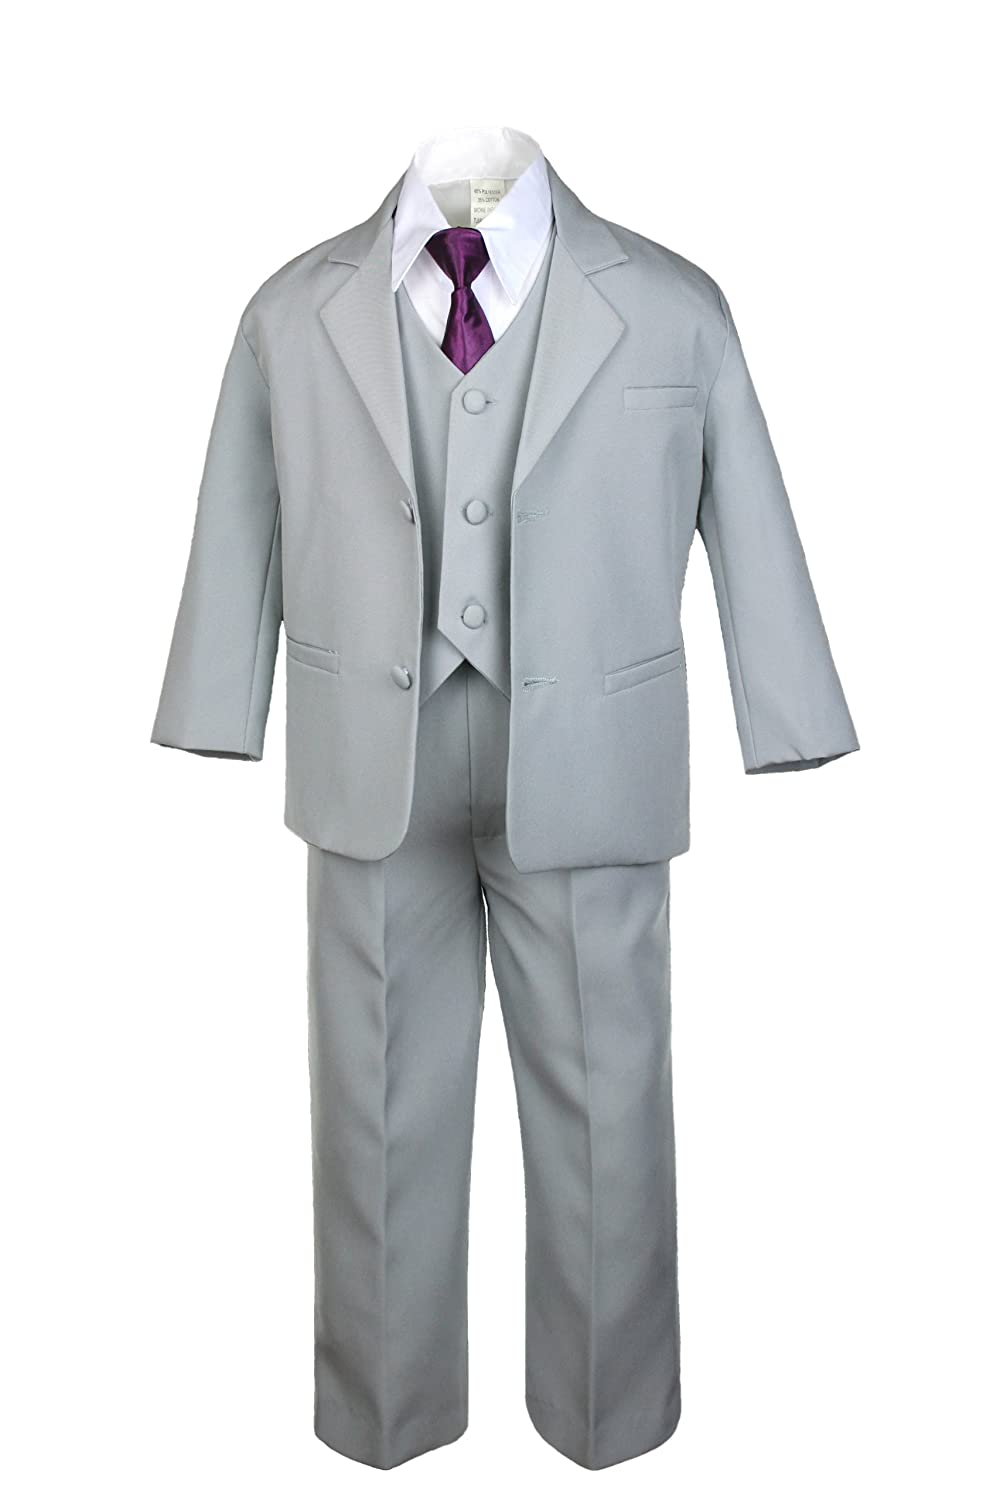 Amazon.com: Unotux 6pc Boys Gray Vest Set Tuxedo Suits with Satin ...